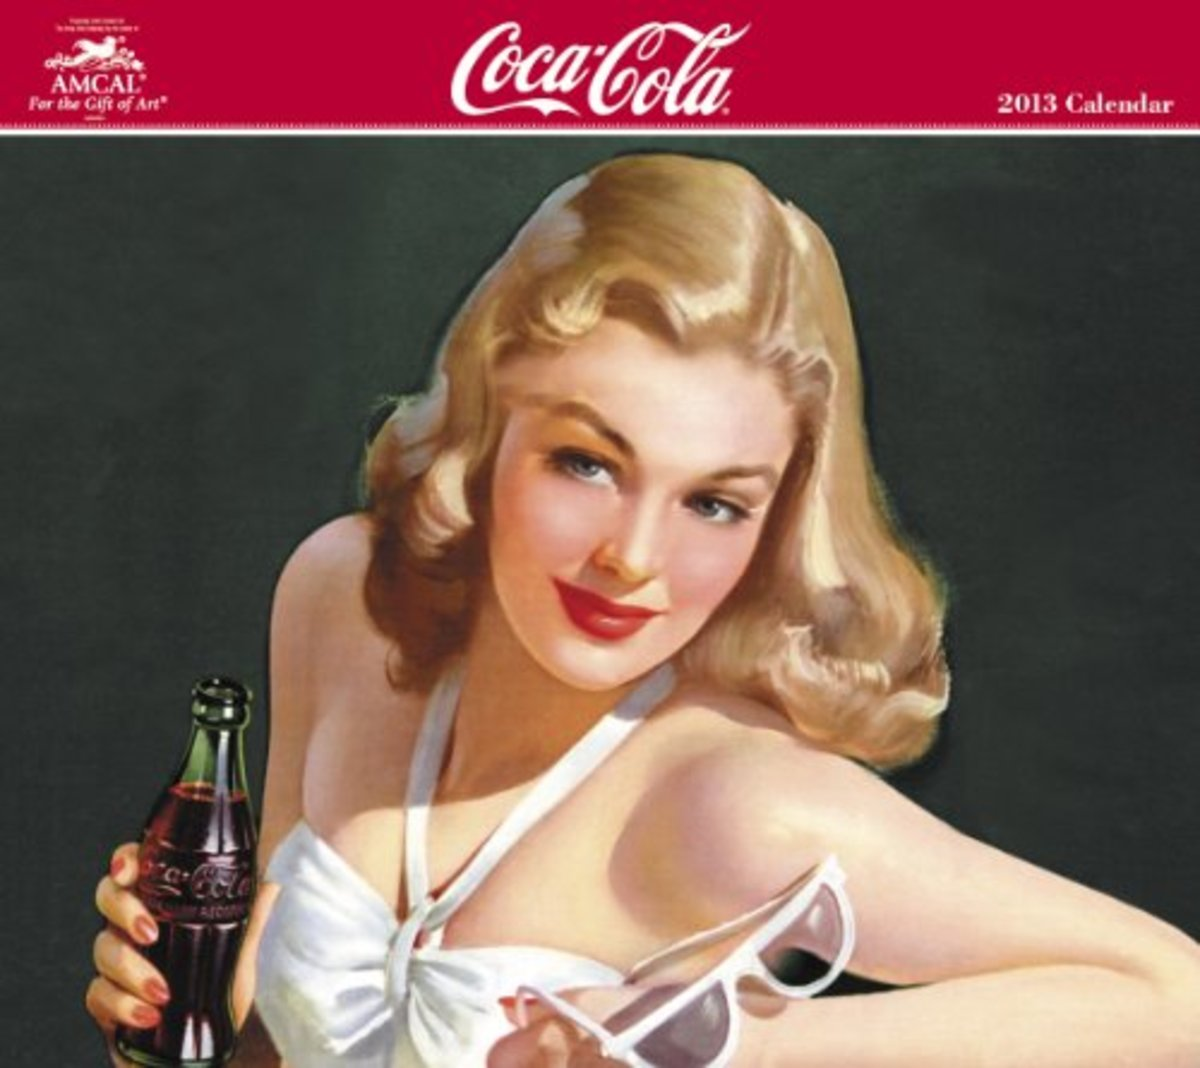 Vintage Coca-Cola Advertisements with Swim Suits